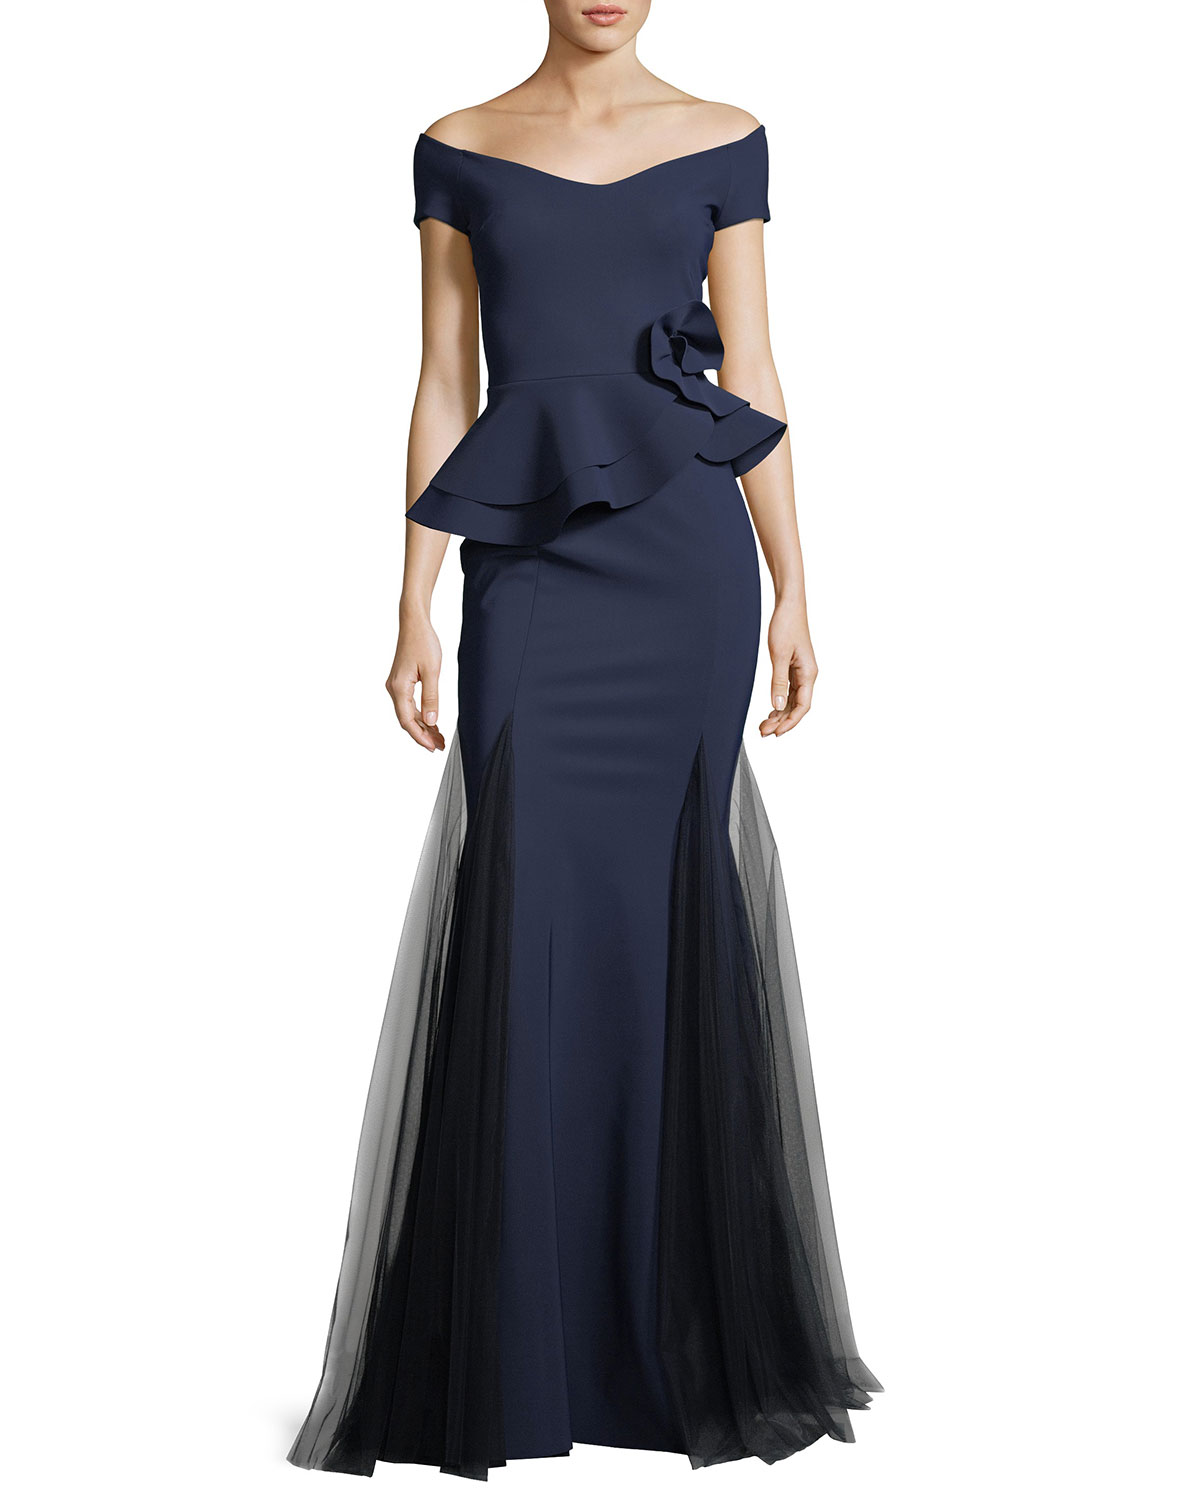 Navy Gown Neiman Marcus Frilly Laser Cut Longdress Quick Look